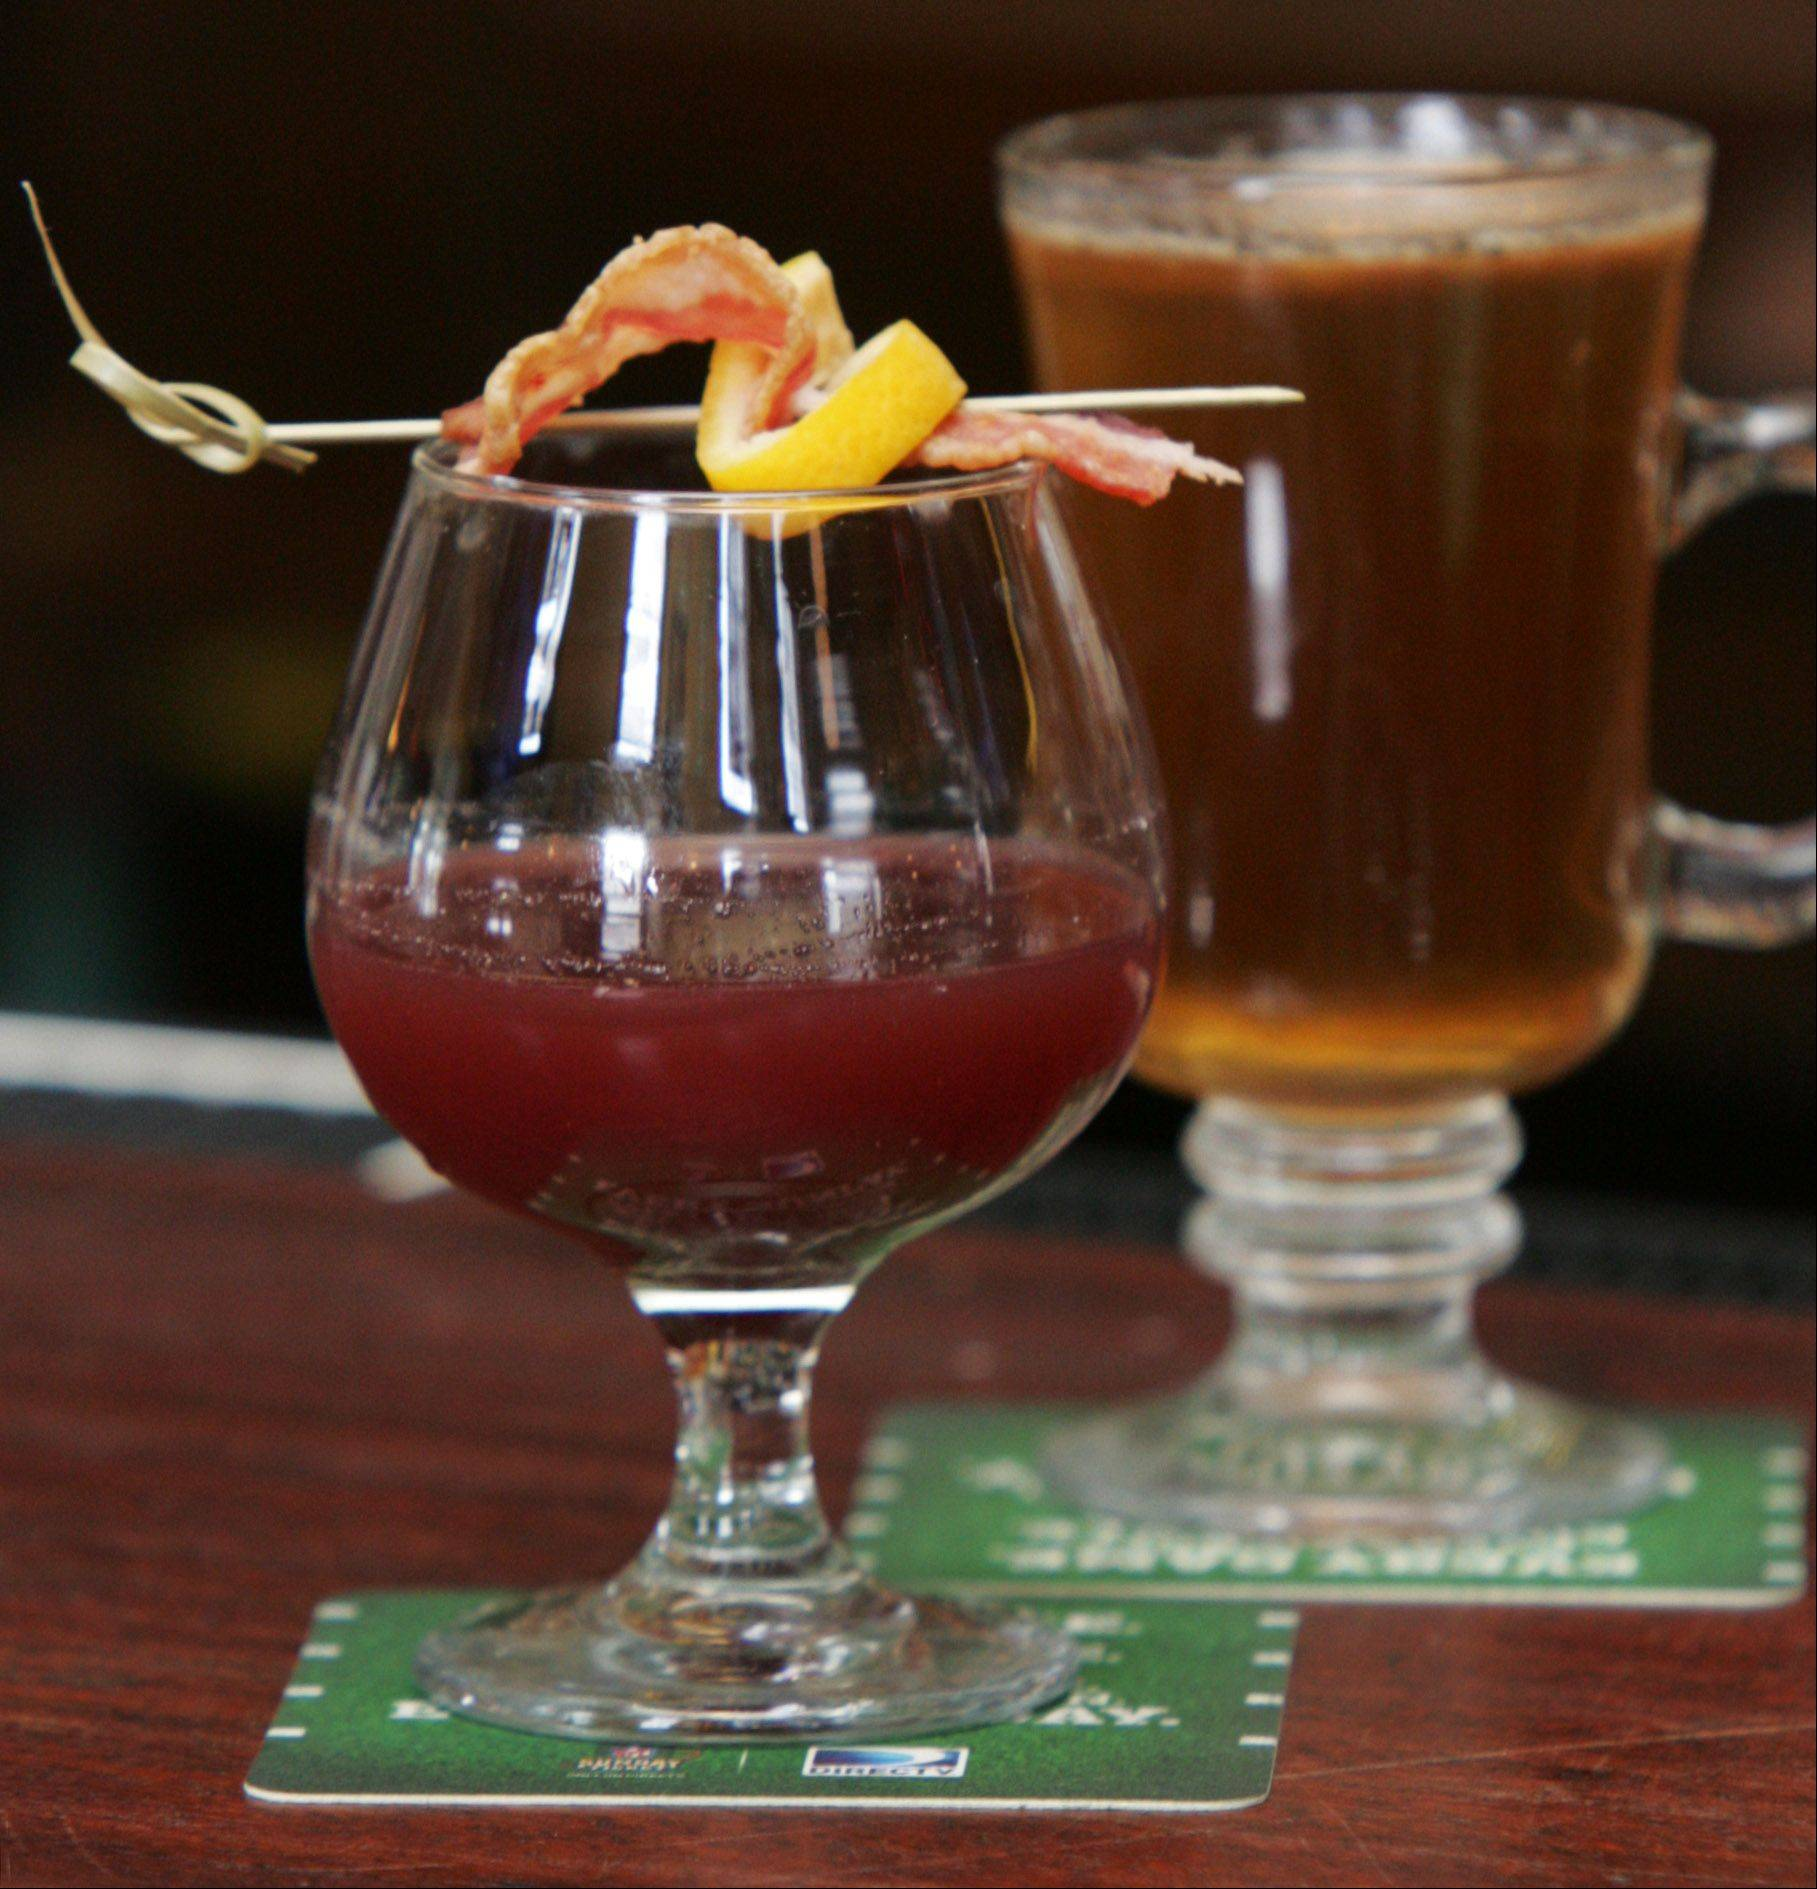 The Bacon Cherry Creek Cocktail, left, and Harvest Hot Buttered Rum are among the bar options at Middleton's On Main in Wauconda.